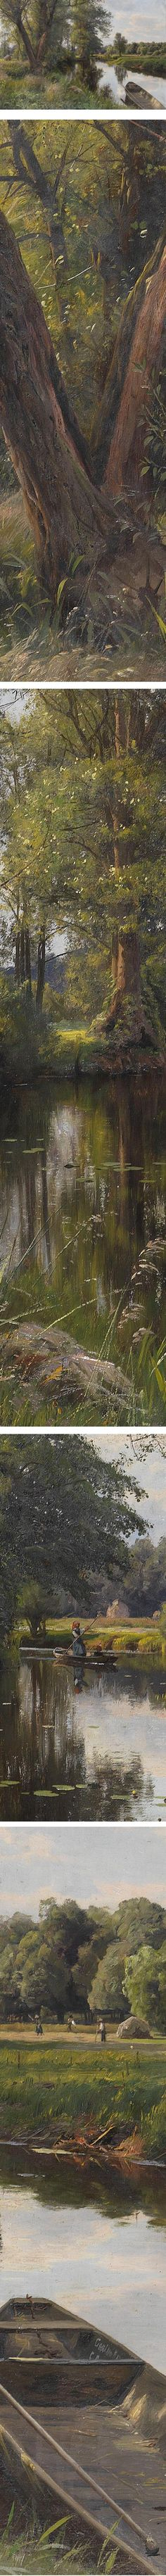 Eye Candy: Summer landscape with river floodplain, Peder Mork Monsted